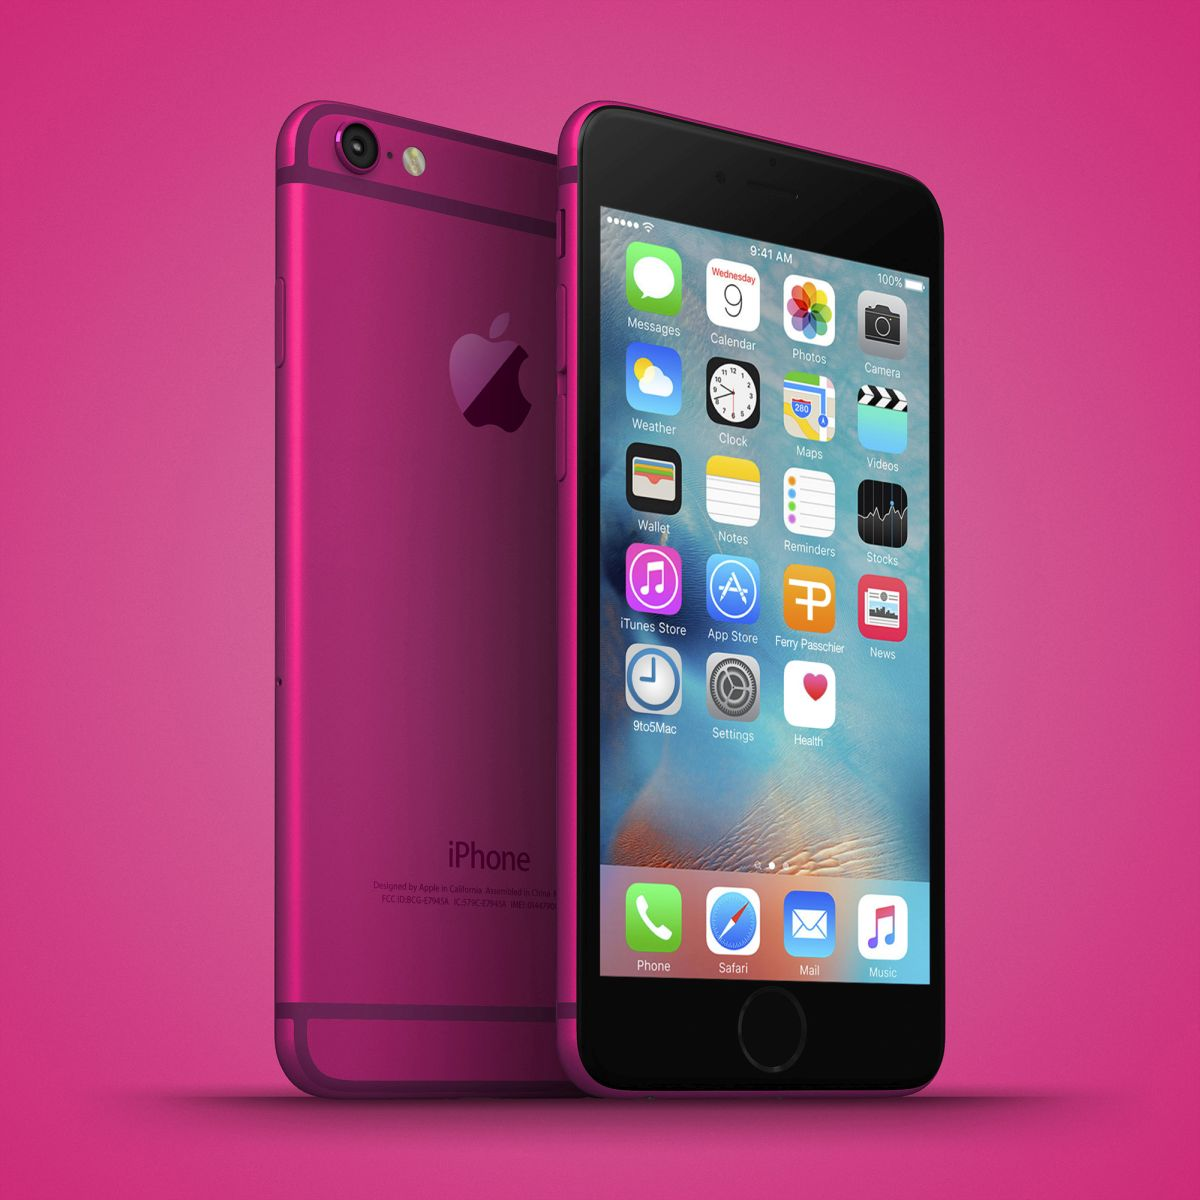 iphone 6c price iphone 6c 2016 gets fresh mockups specs 4 inch screen 1440